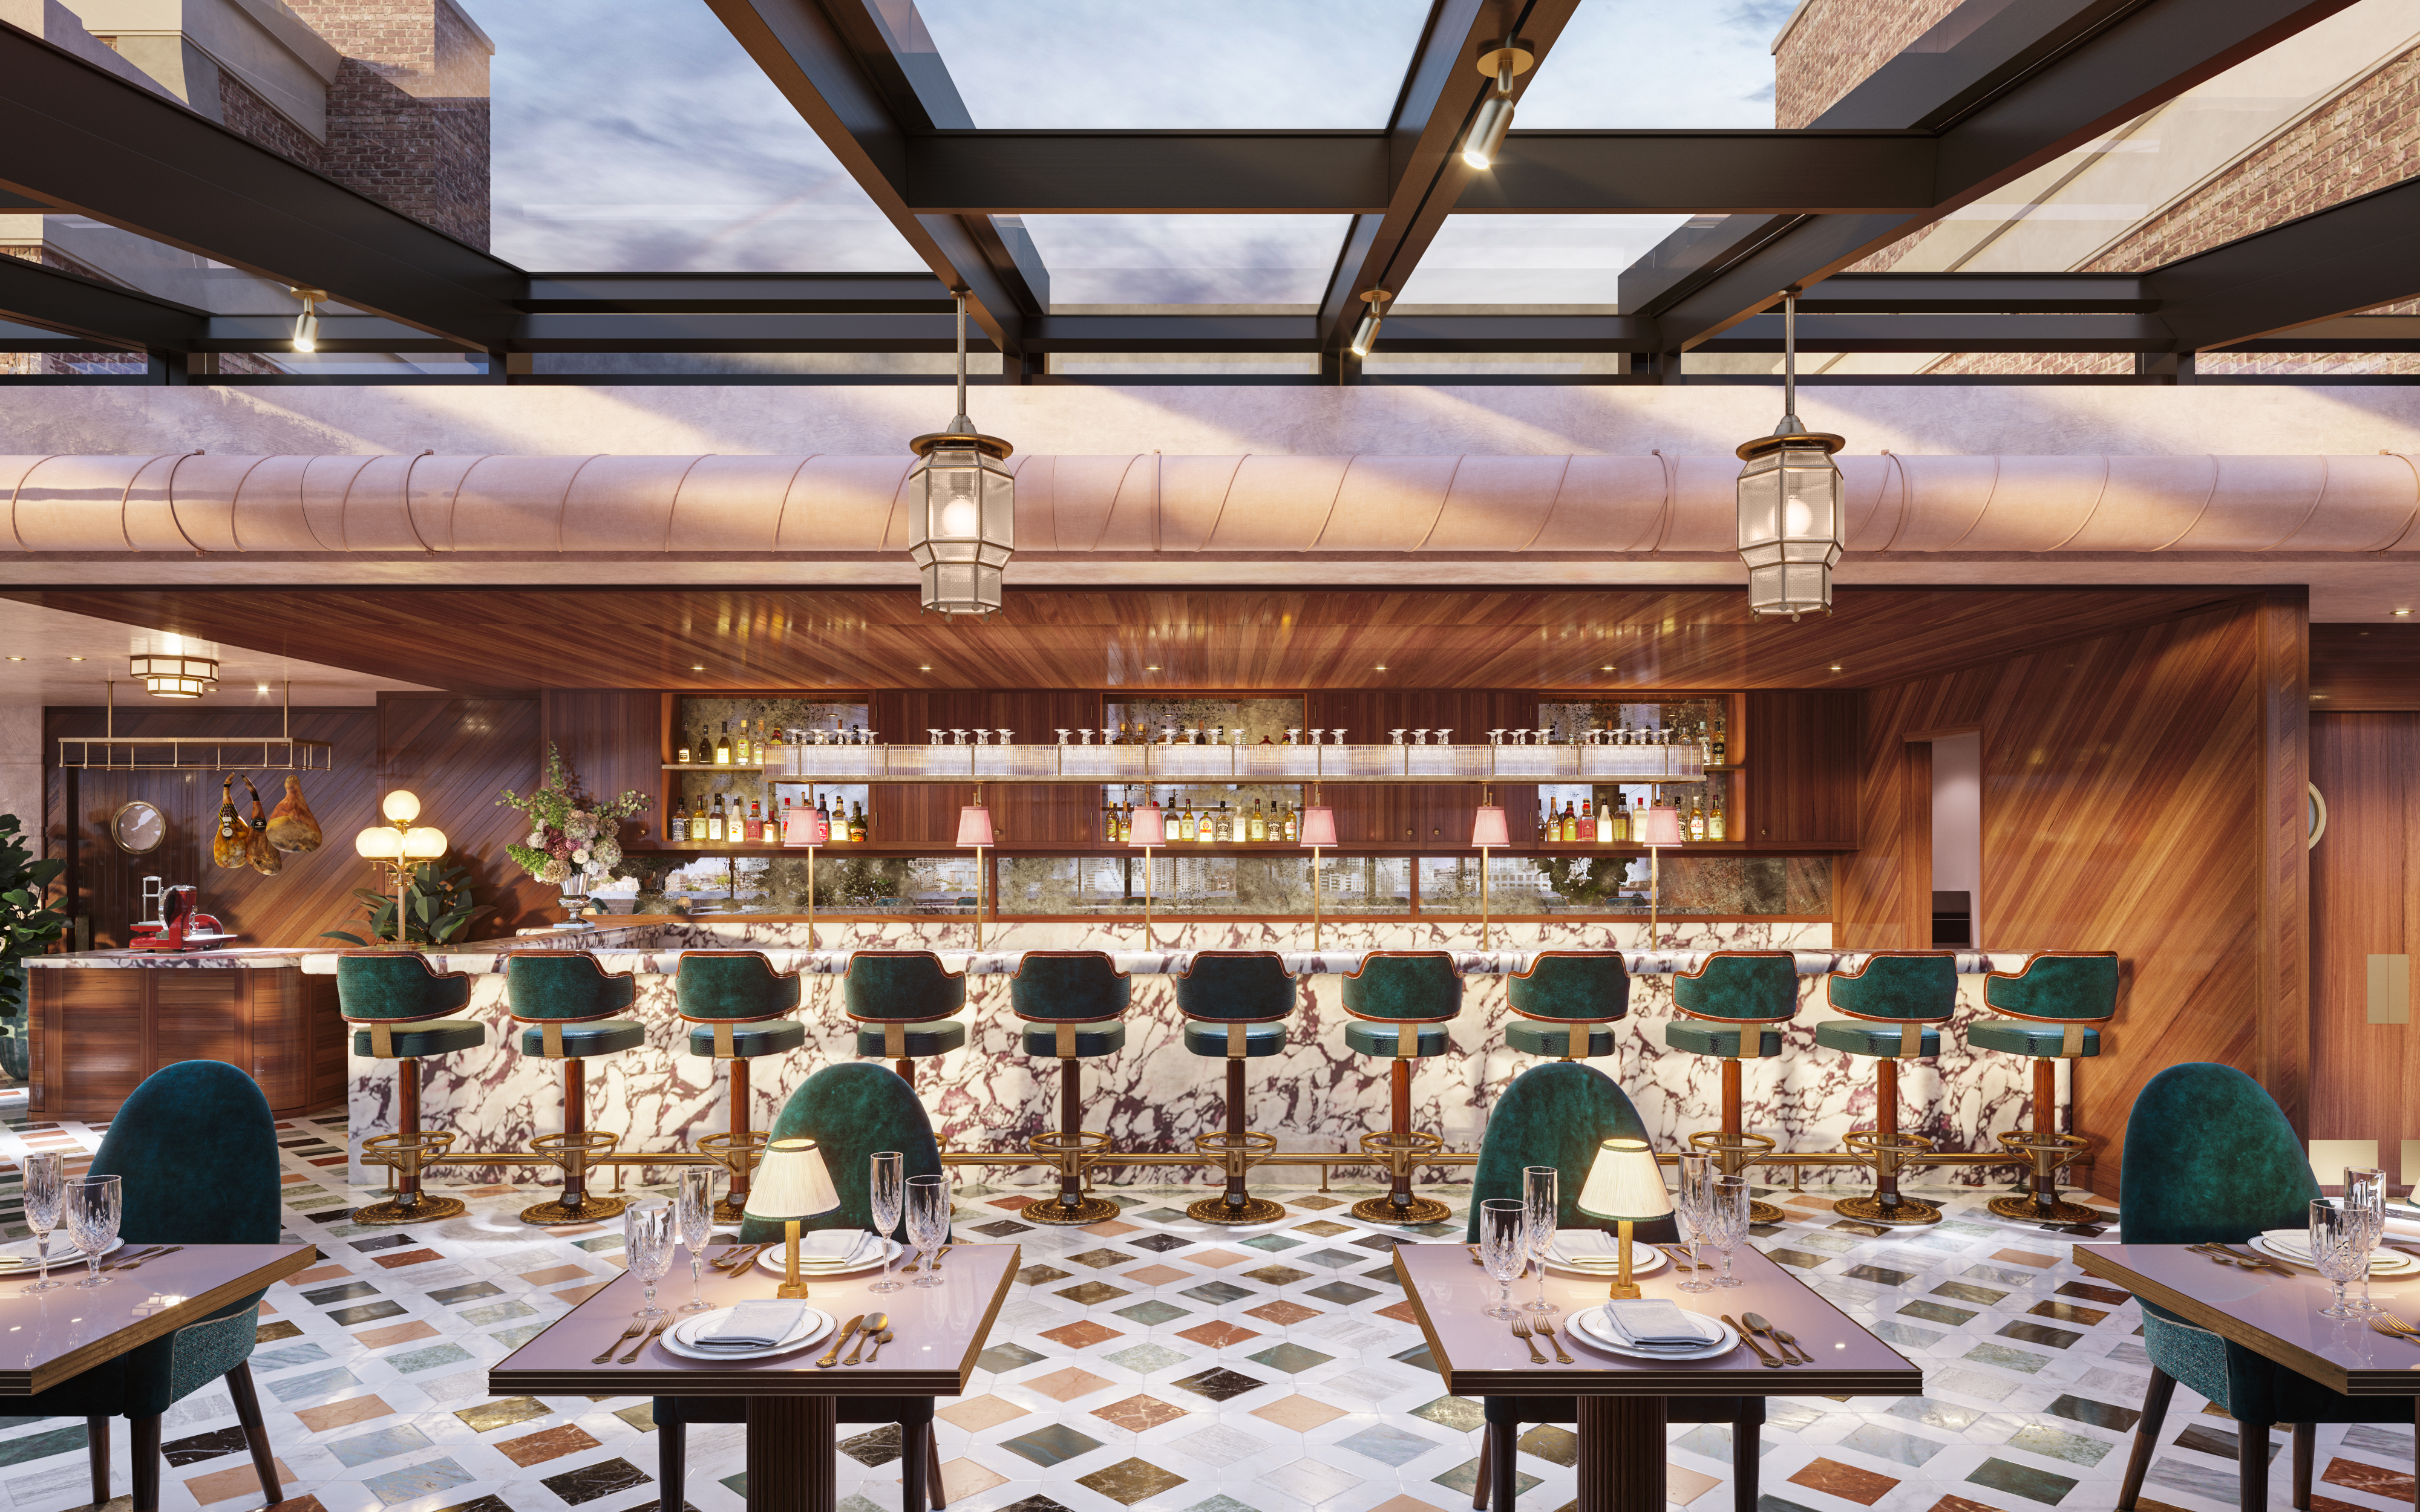 A rendering of a restaurant features a floor tiled with diamonds in shades of white, brown, and gray; plus turquoise chairs at two-top tables in the foreground and a bar in the background; and a glass ceiling revealing city views